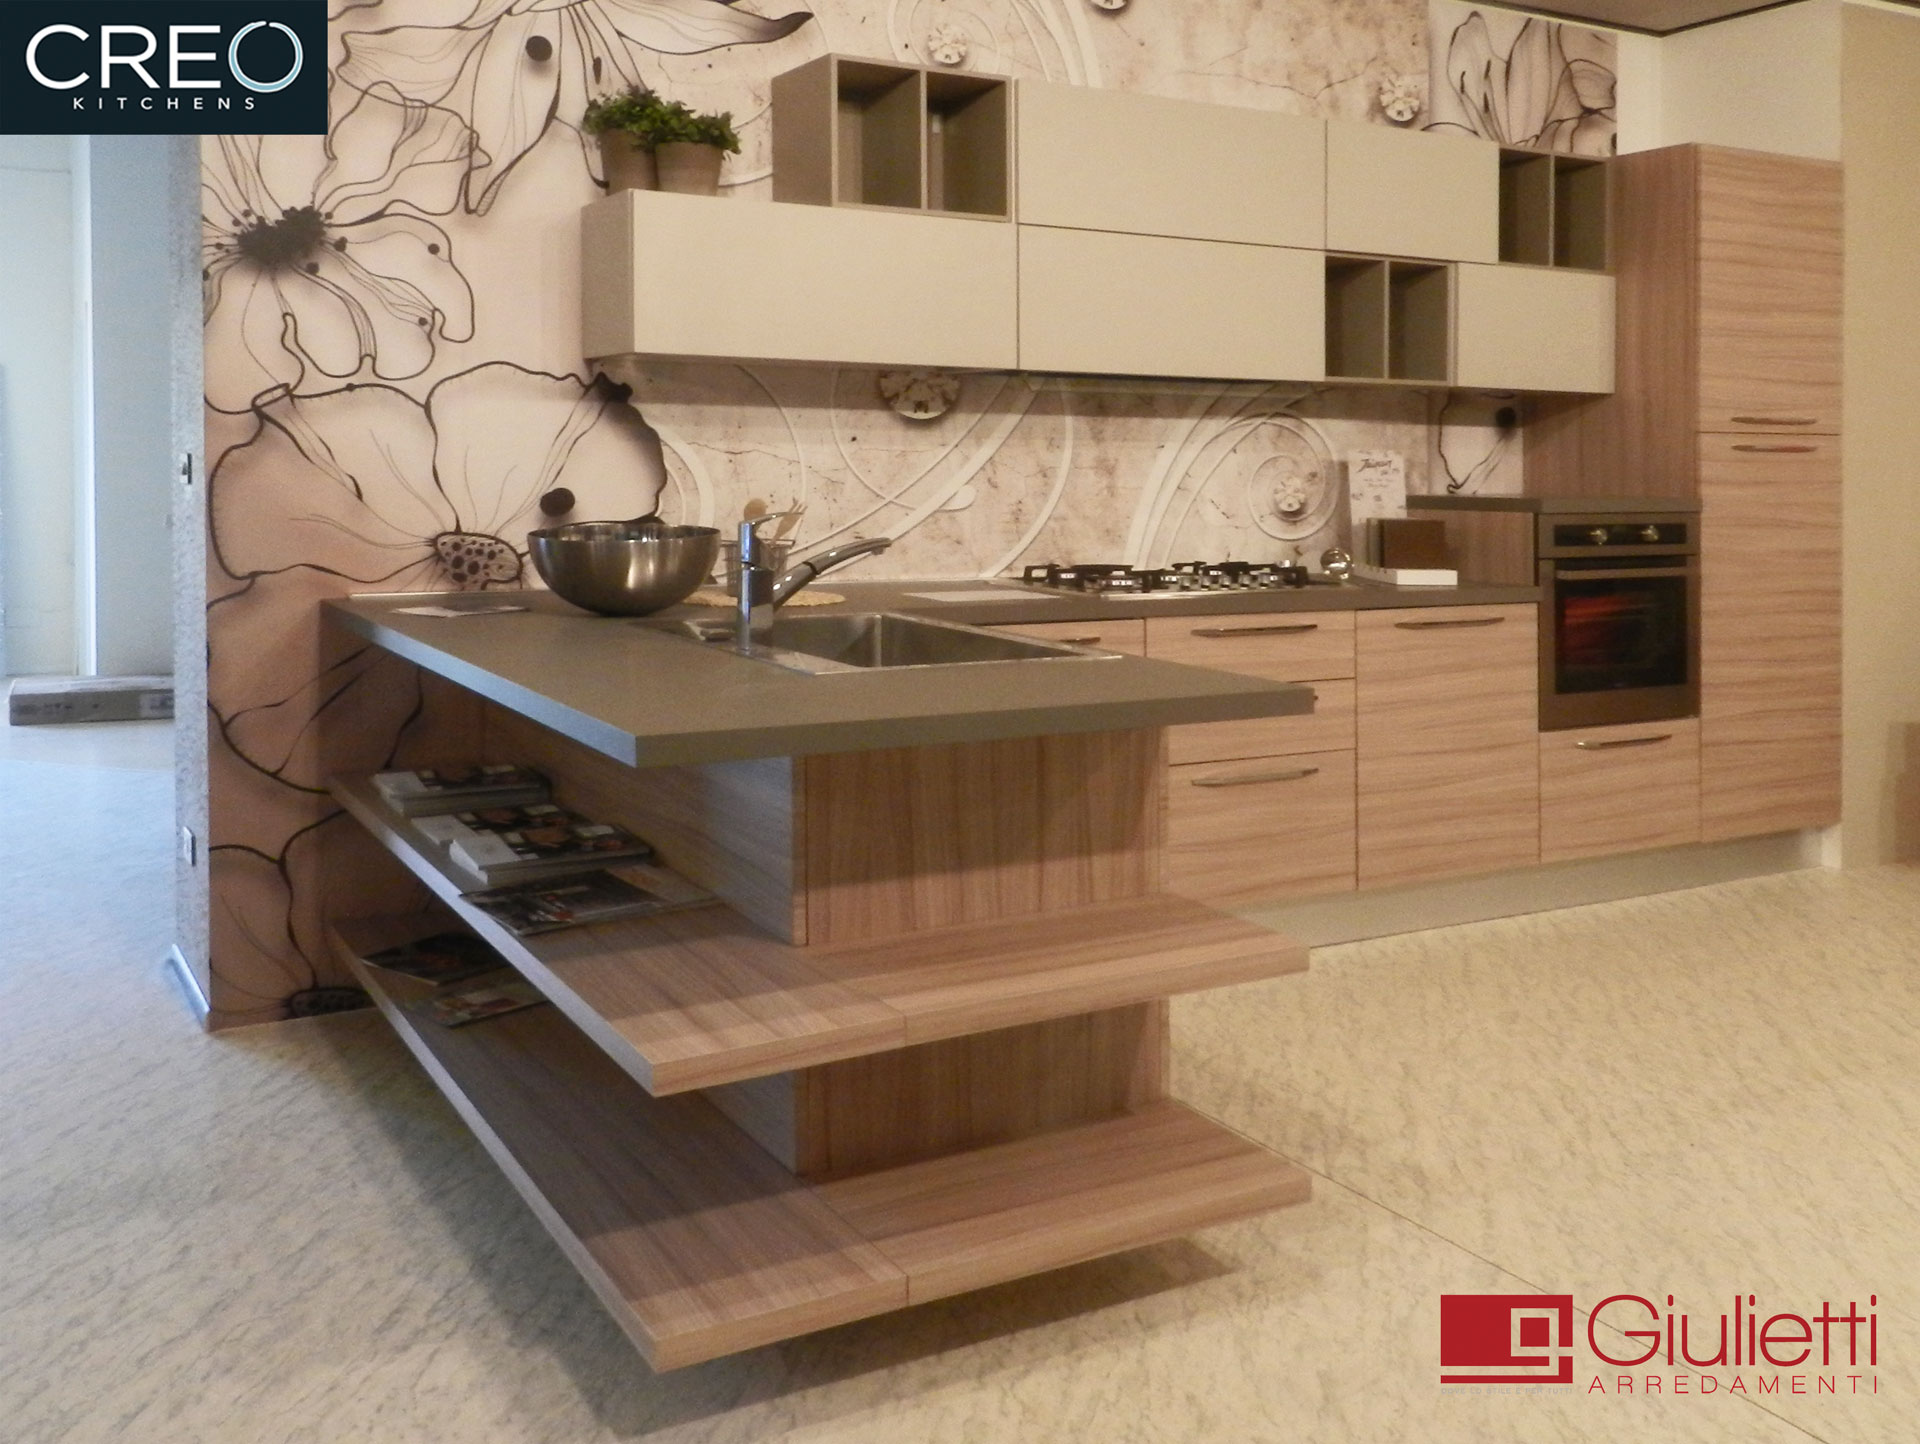 cucina lube creo kitchens kyra